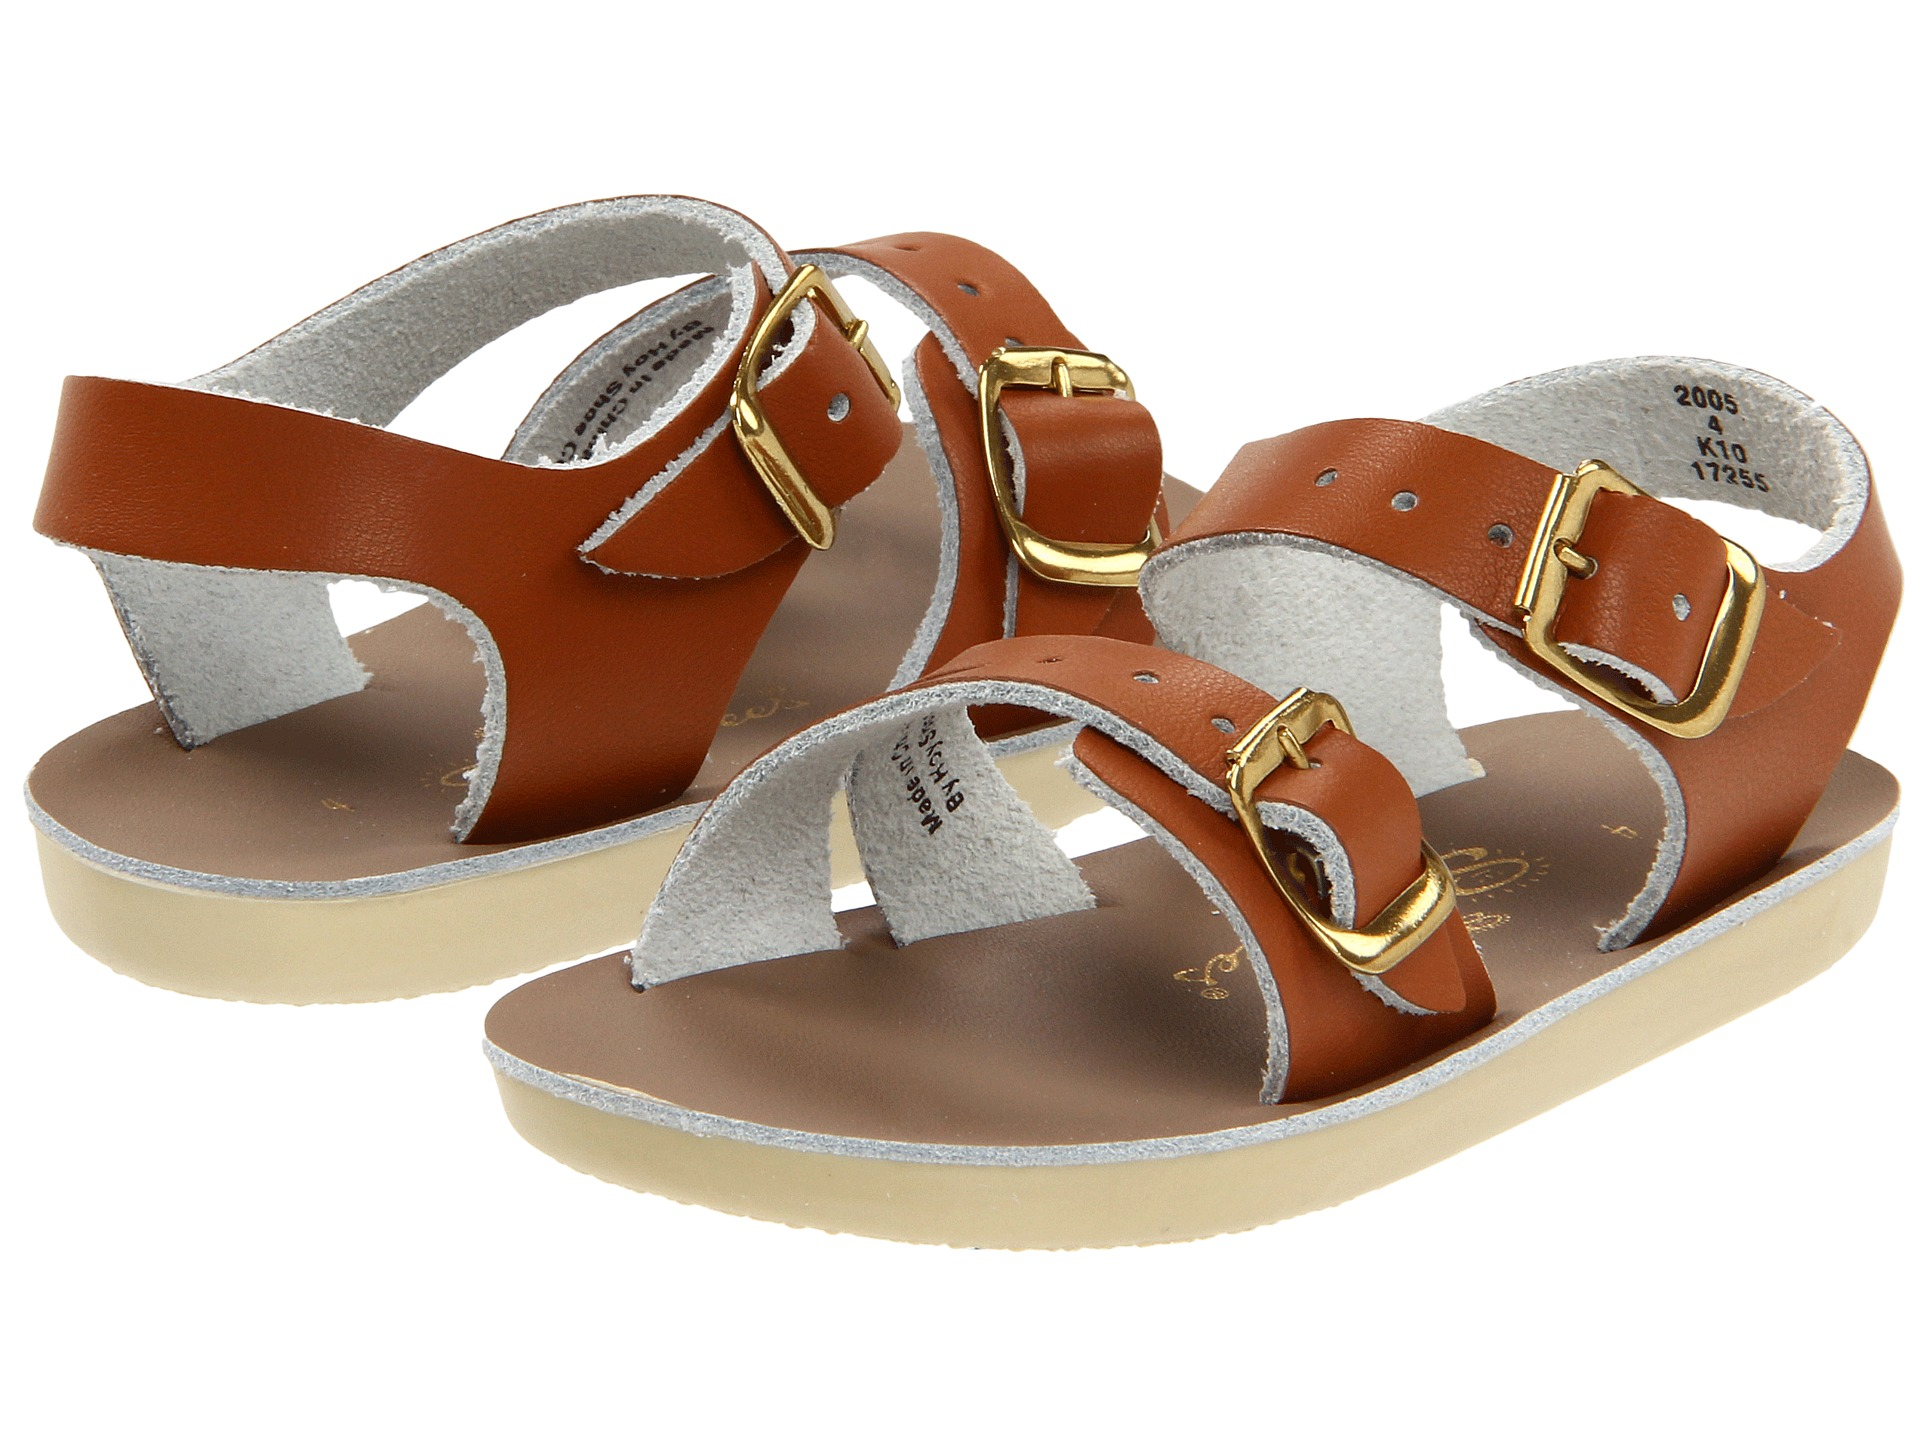 salt water sandal by hoy shoes sun san sea wees infant toddler tan free. Black Bedroom Furniture Sets. Home Design Ideas